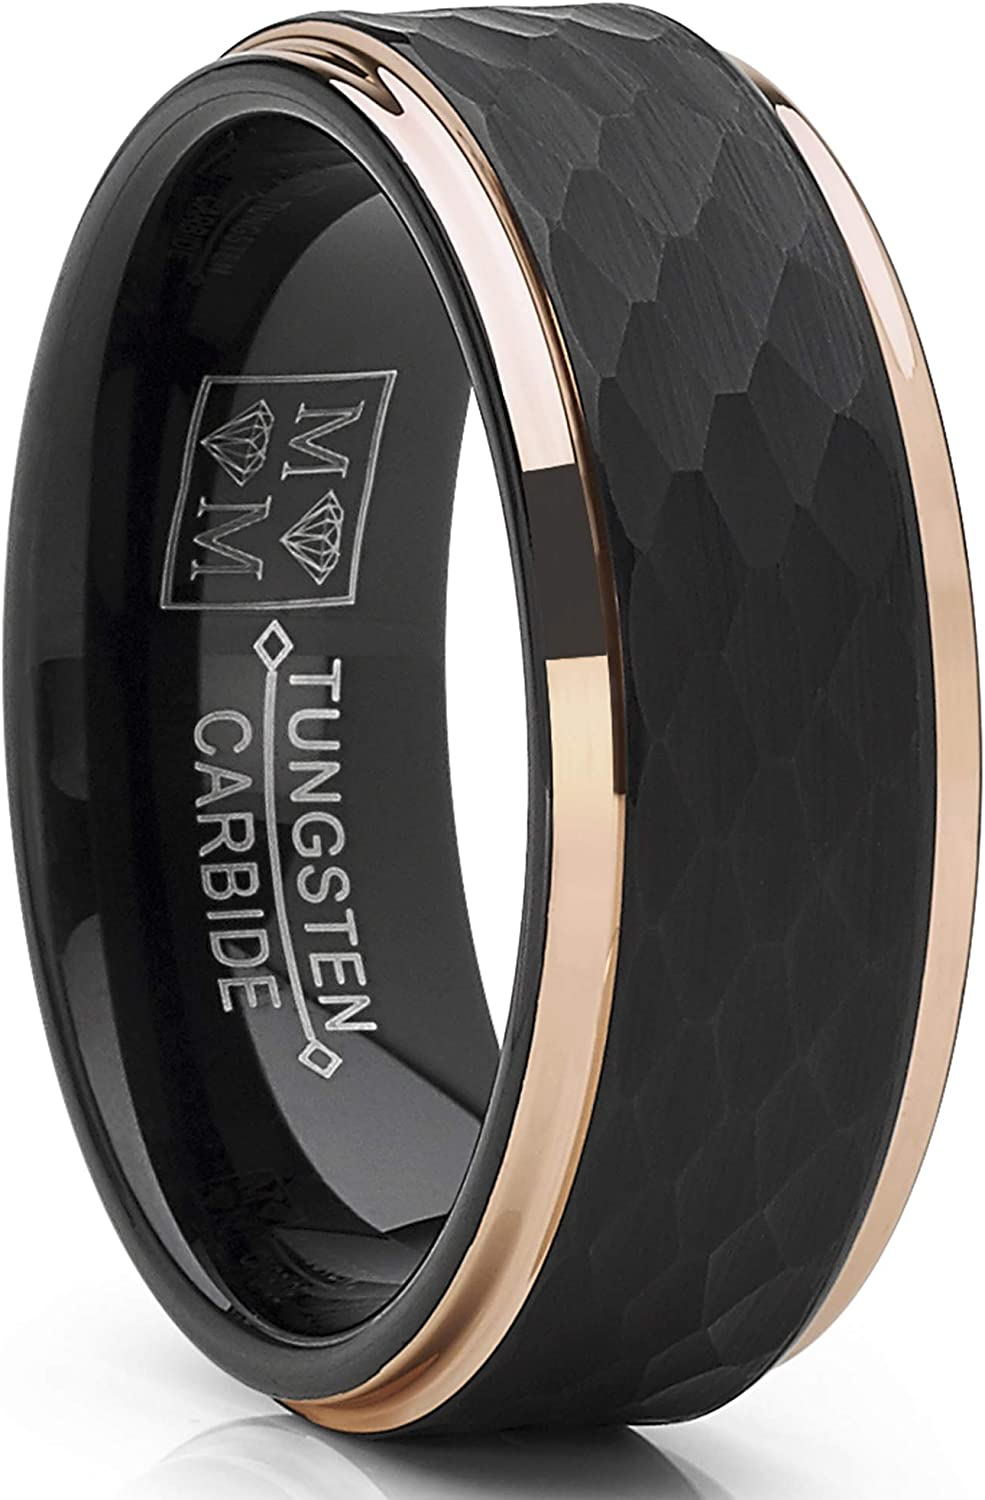 Metal Masters Co. Men's Tungsten Carbide Wedding Ring Black and Rose Goldtone Hammered Band